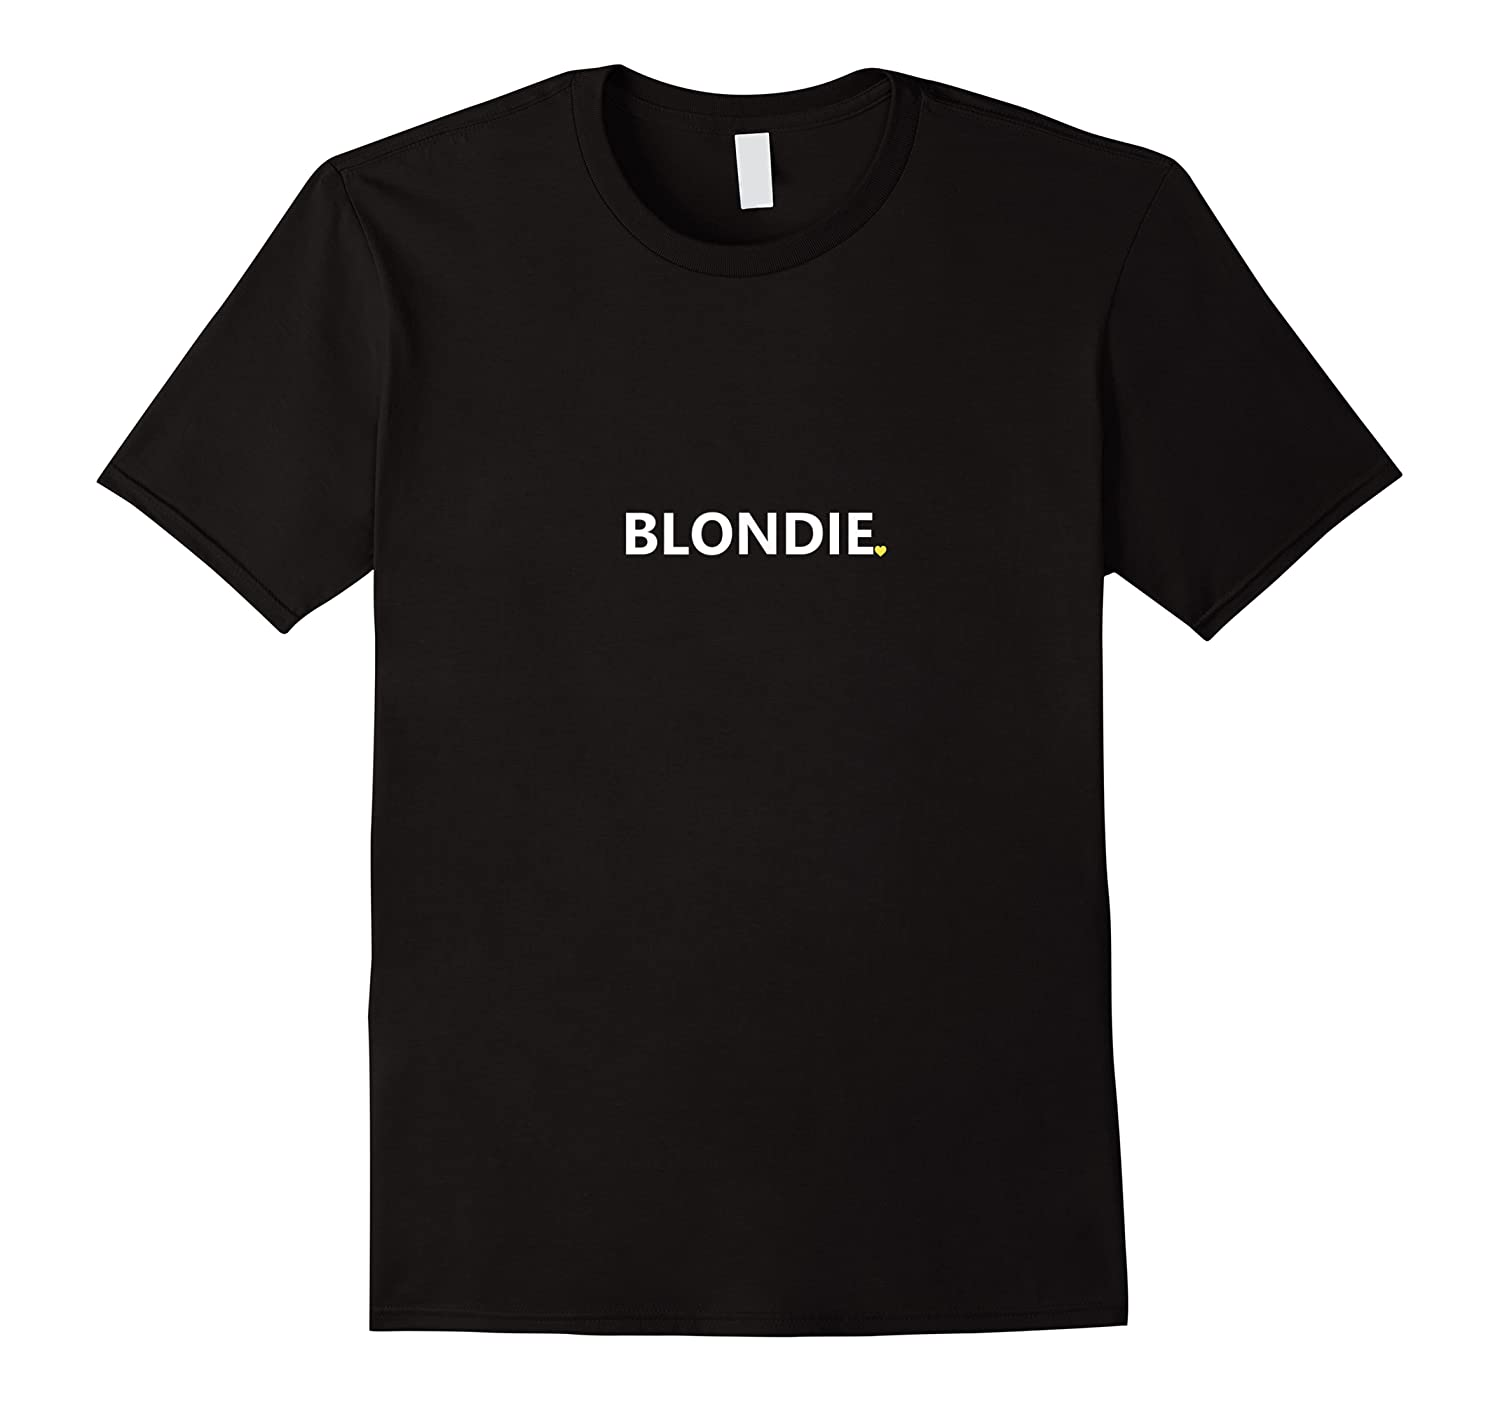 Blondie, Brownie And Ginger Best Friends Shirts